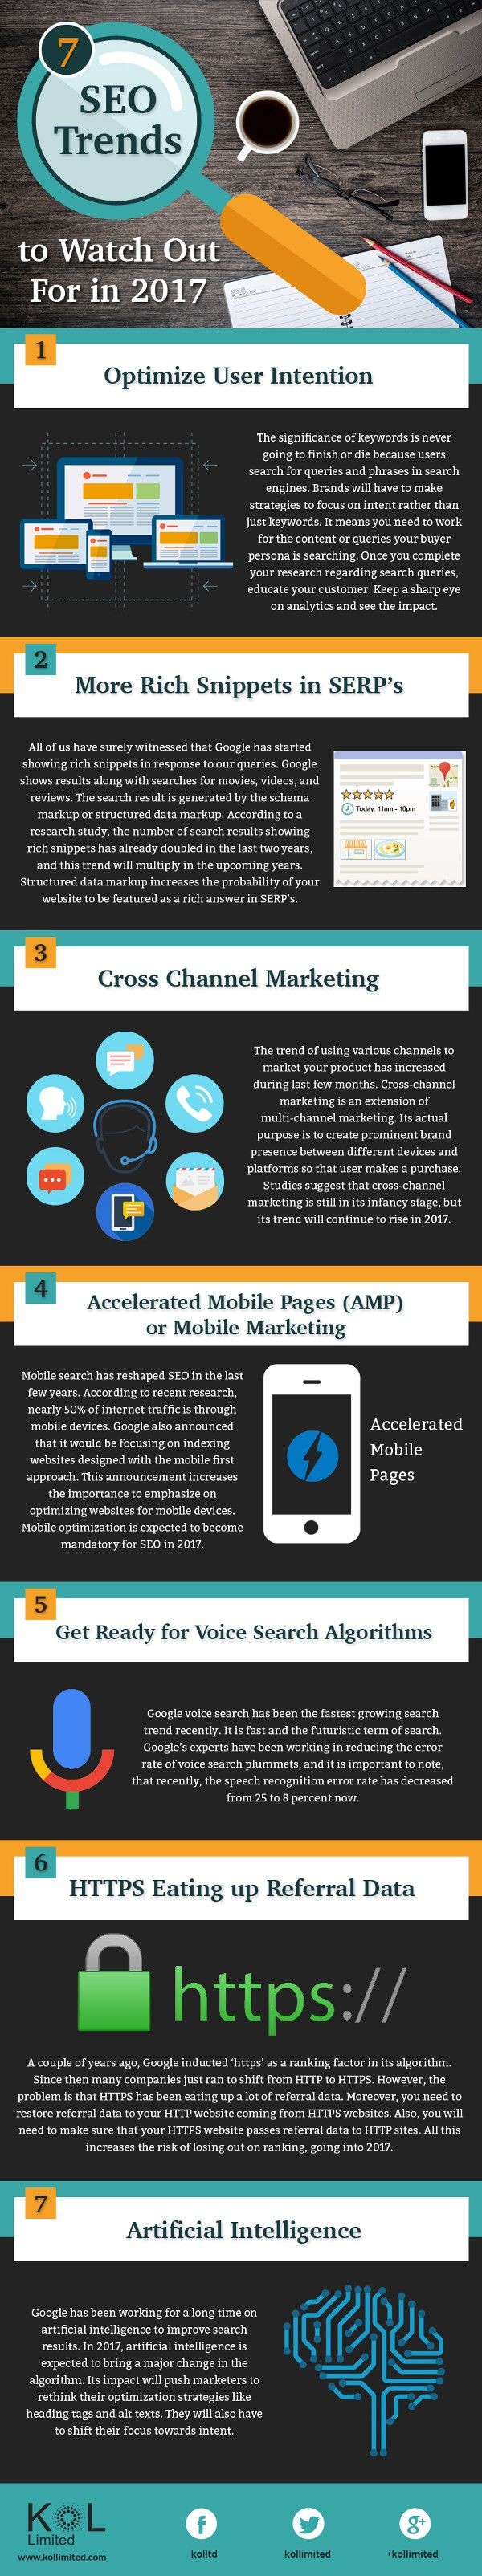 Accelerated mobile pages (AMPs) and rich snippets are just a couple of SEO must-haves if marketers want to keep up with SEO trends in 2017. See what other search trends marketers can expect.